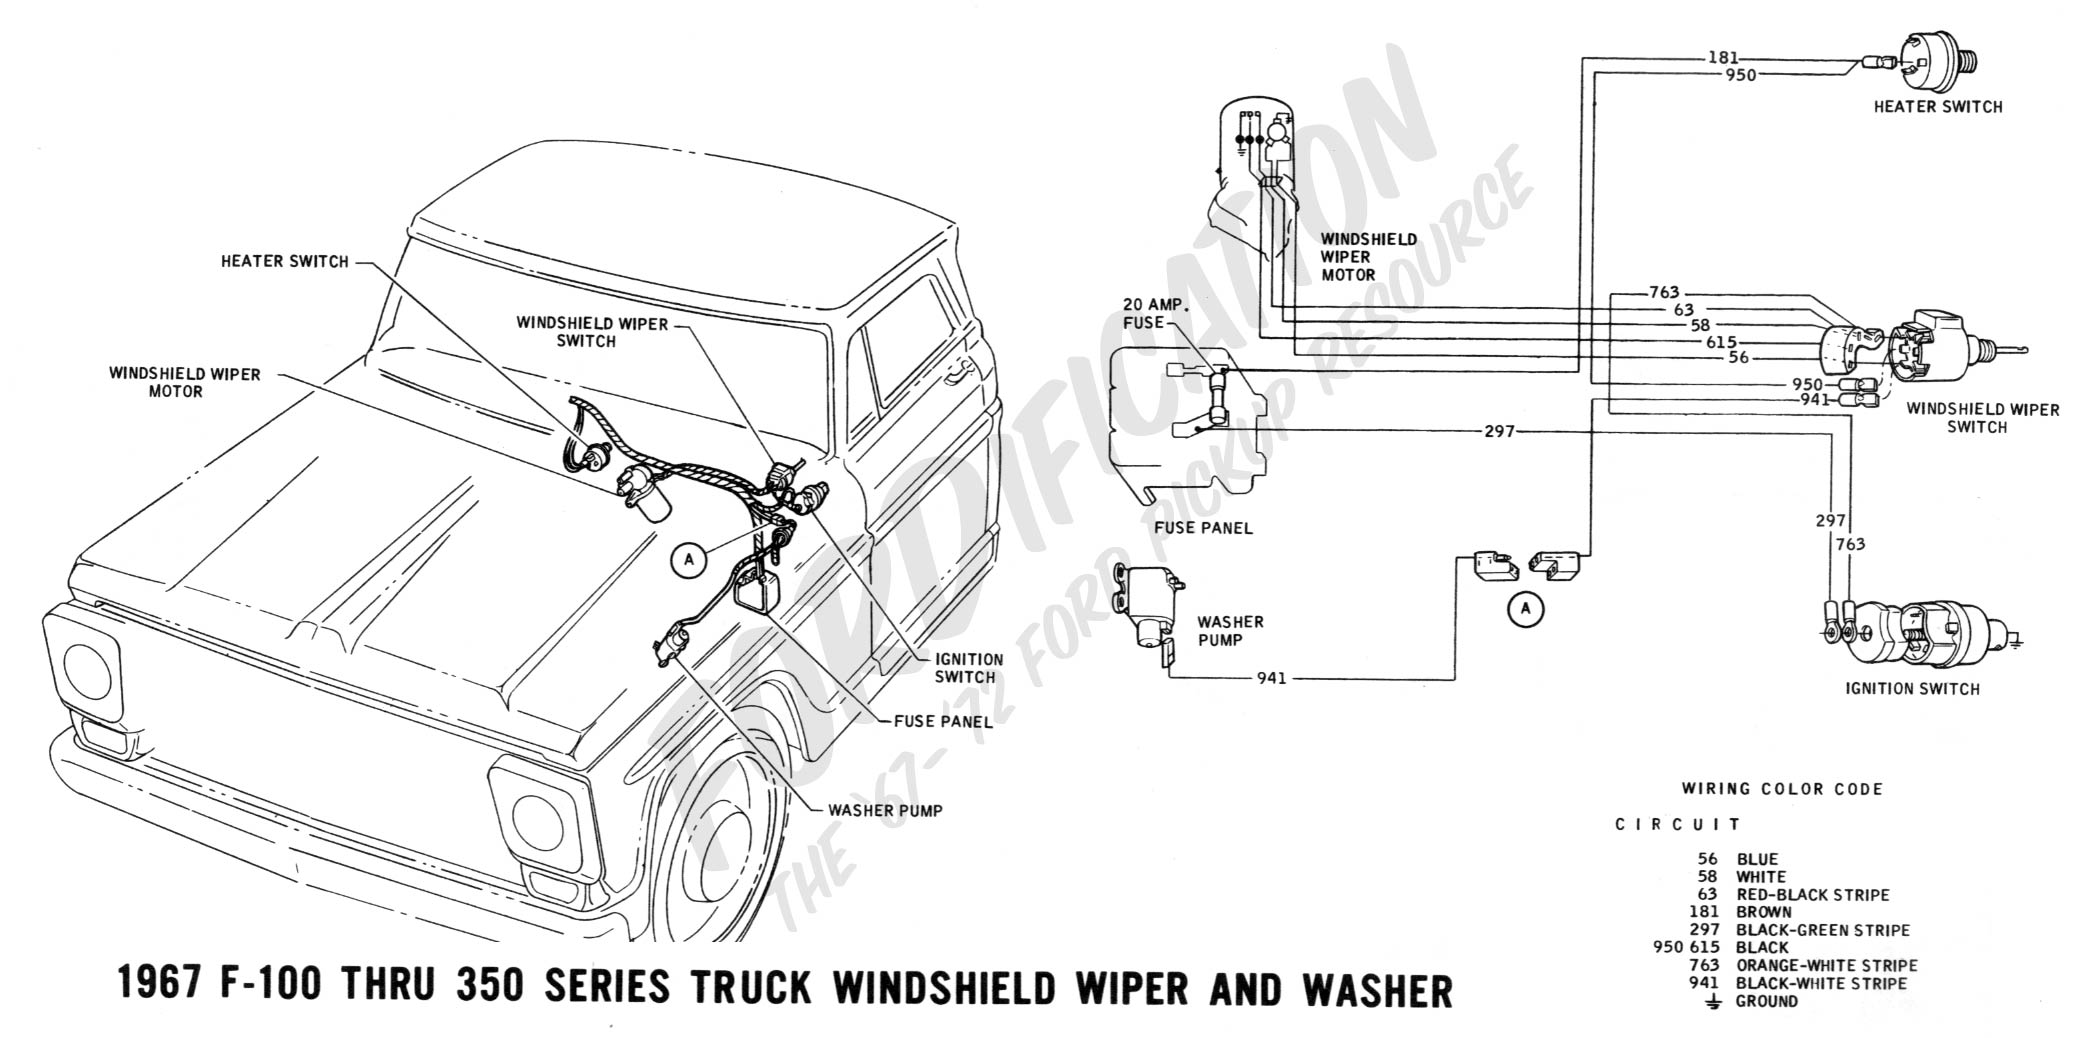 66 Ford Mustang Wiring Diagram Image Details Truck Technical Drawings And Schematics Section H 1967 F 100 Thru 350 Windshield Wiper Washer